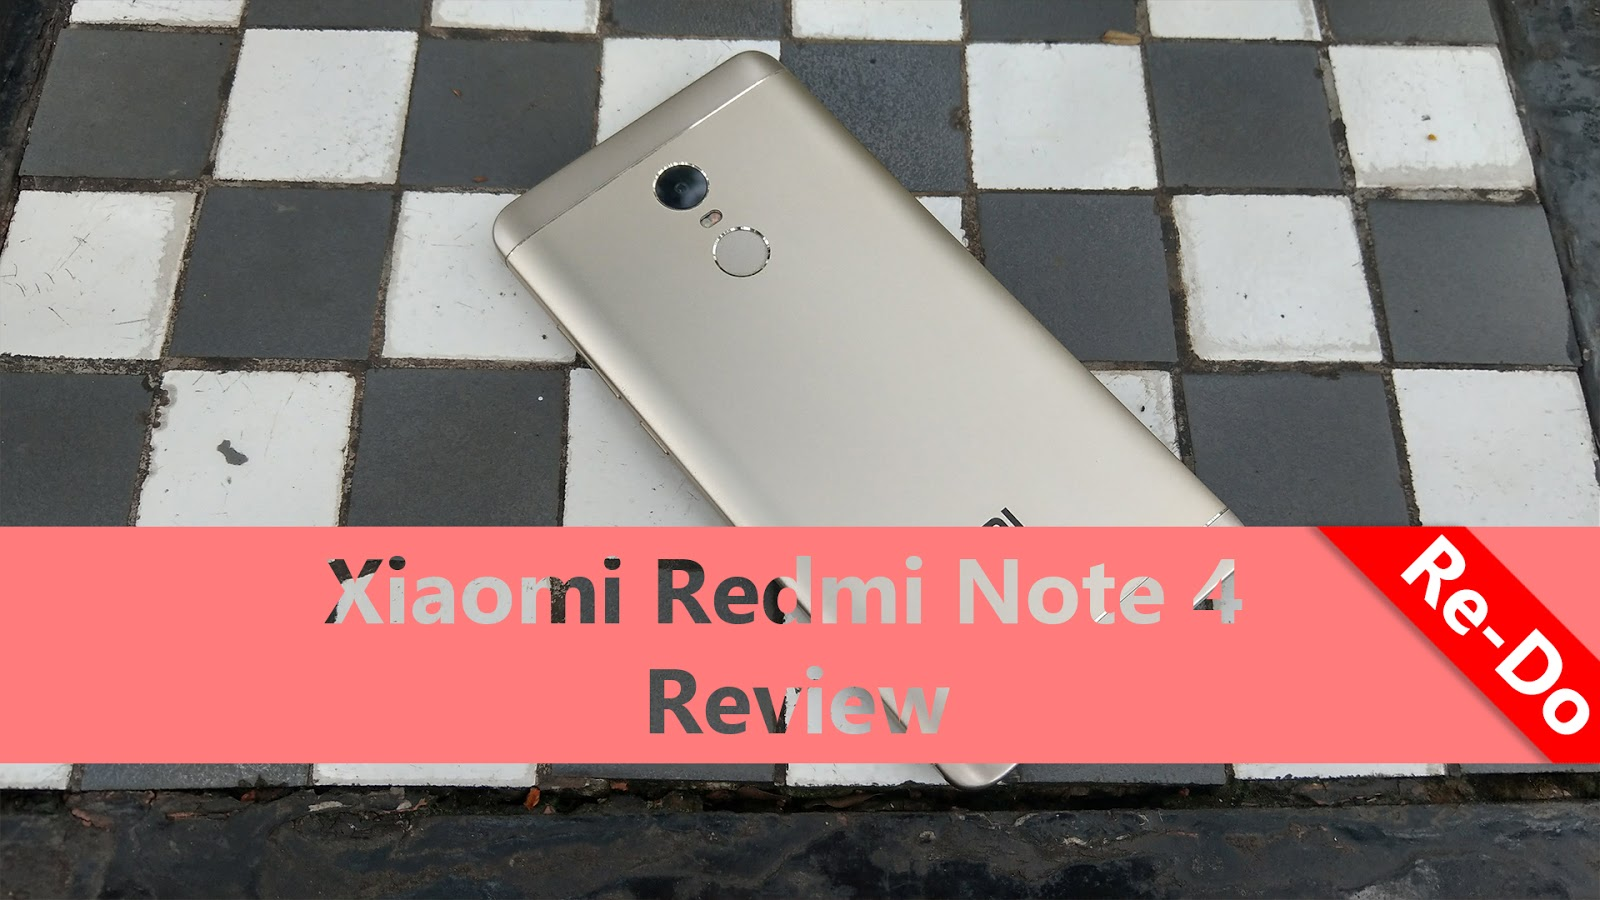 Xiaomi Redmi Note 4 Review Re-Do [December 2017] | Mister